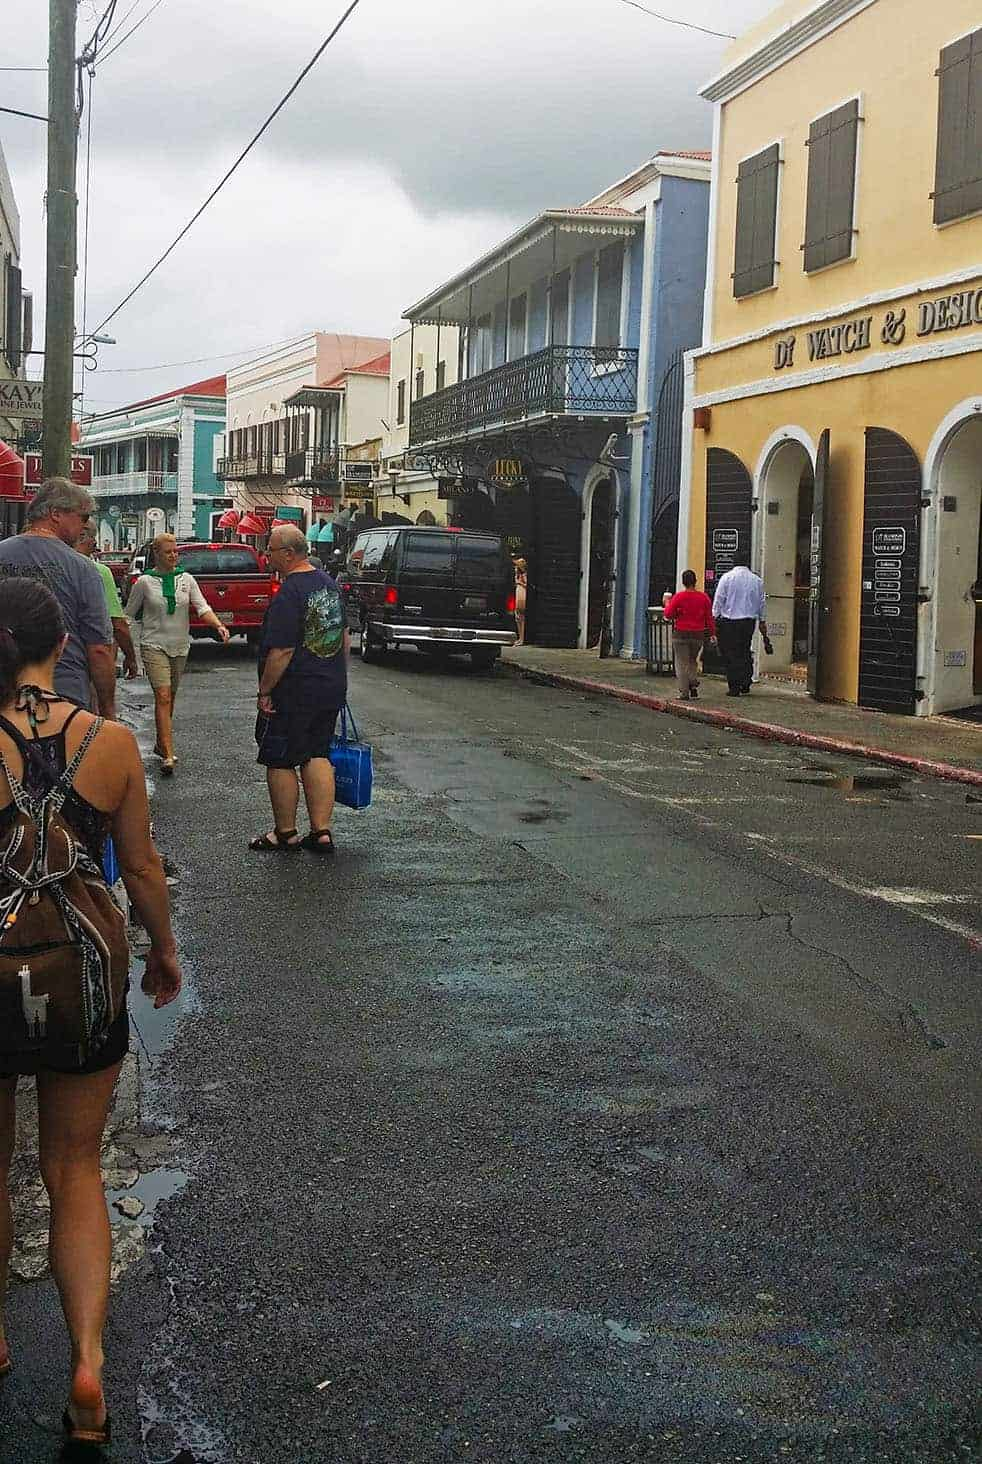 Downtown Charlote Amalie, St. Thomas